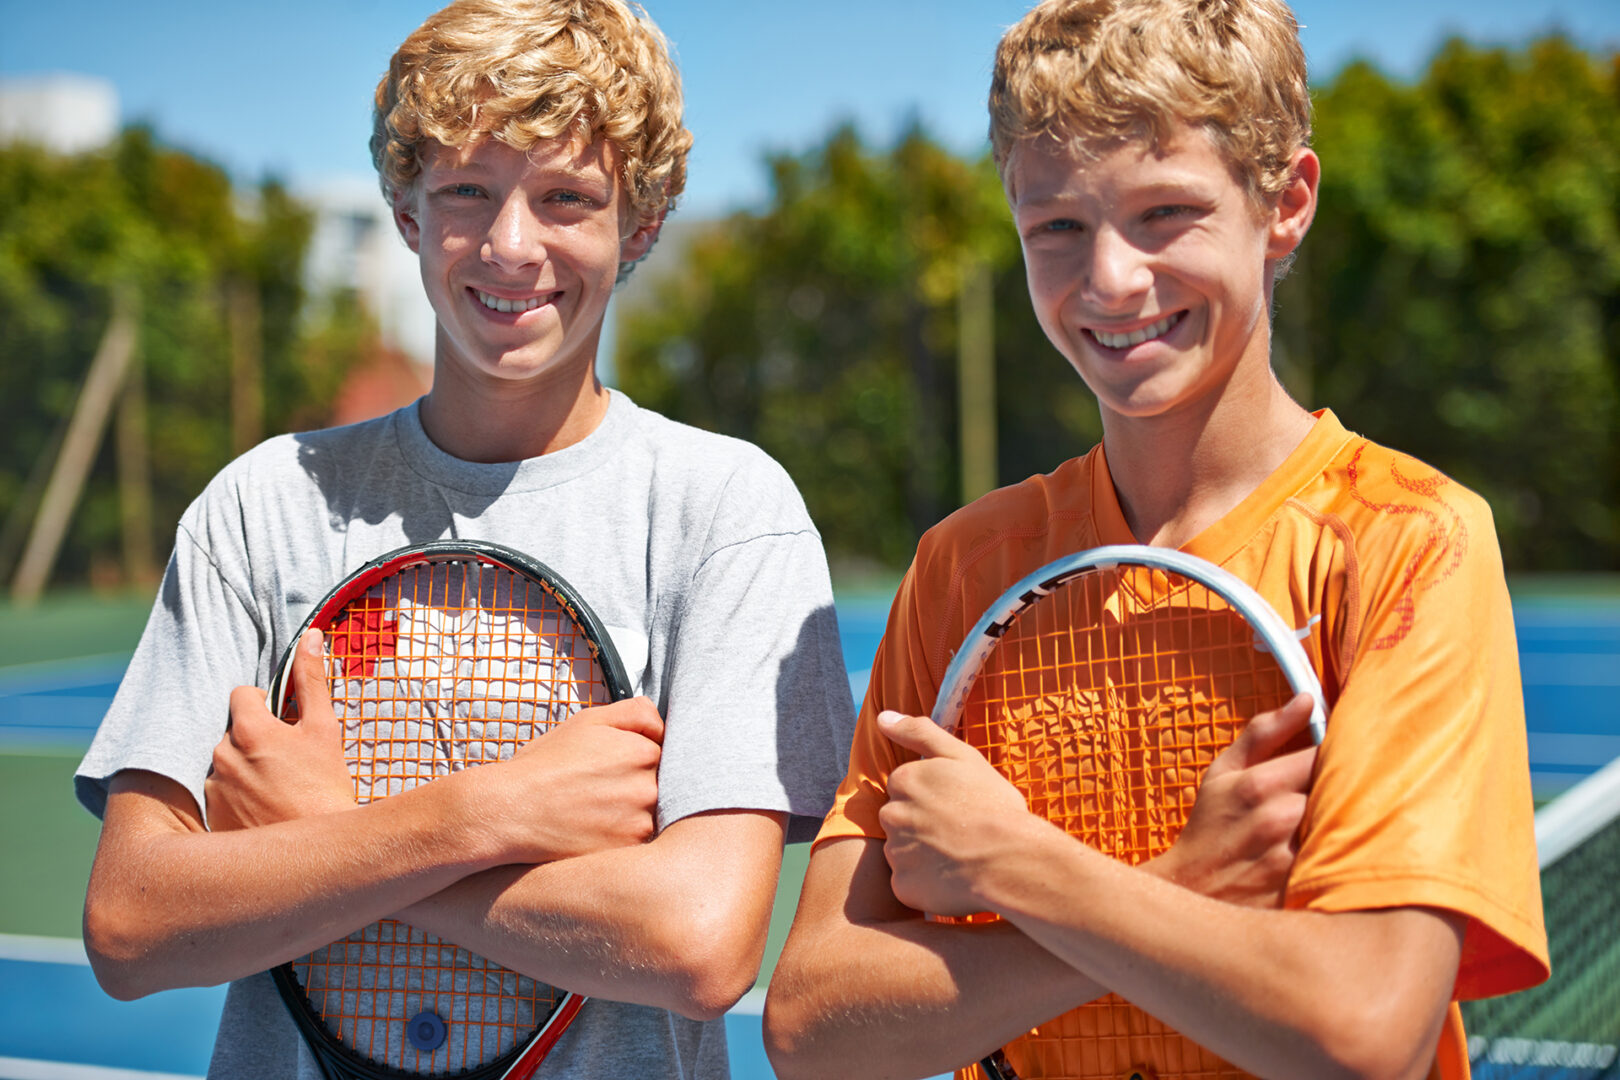 Two friends standing together and holding their tennis rackets on the court